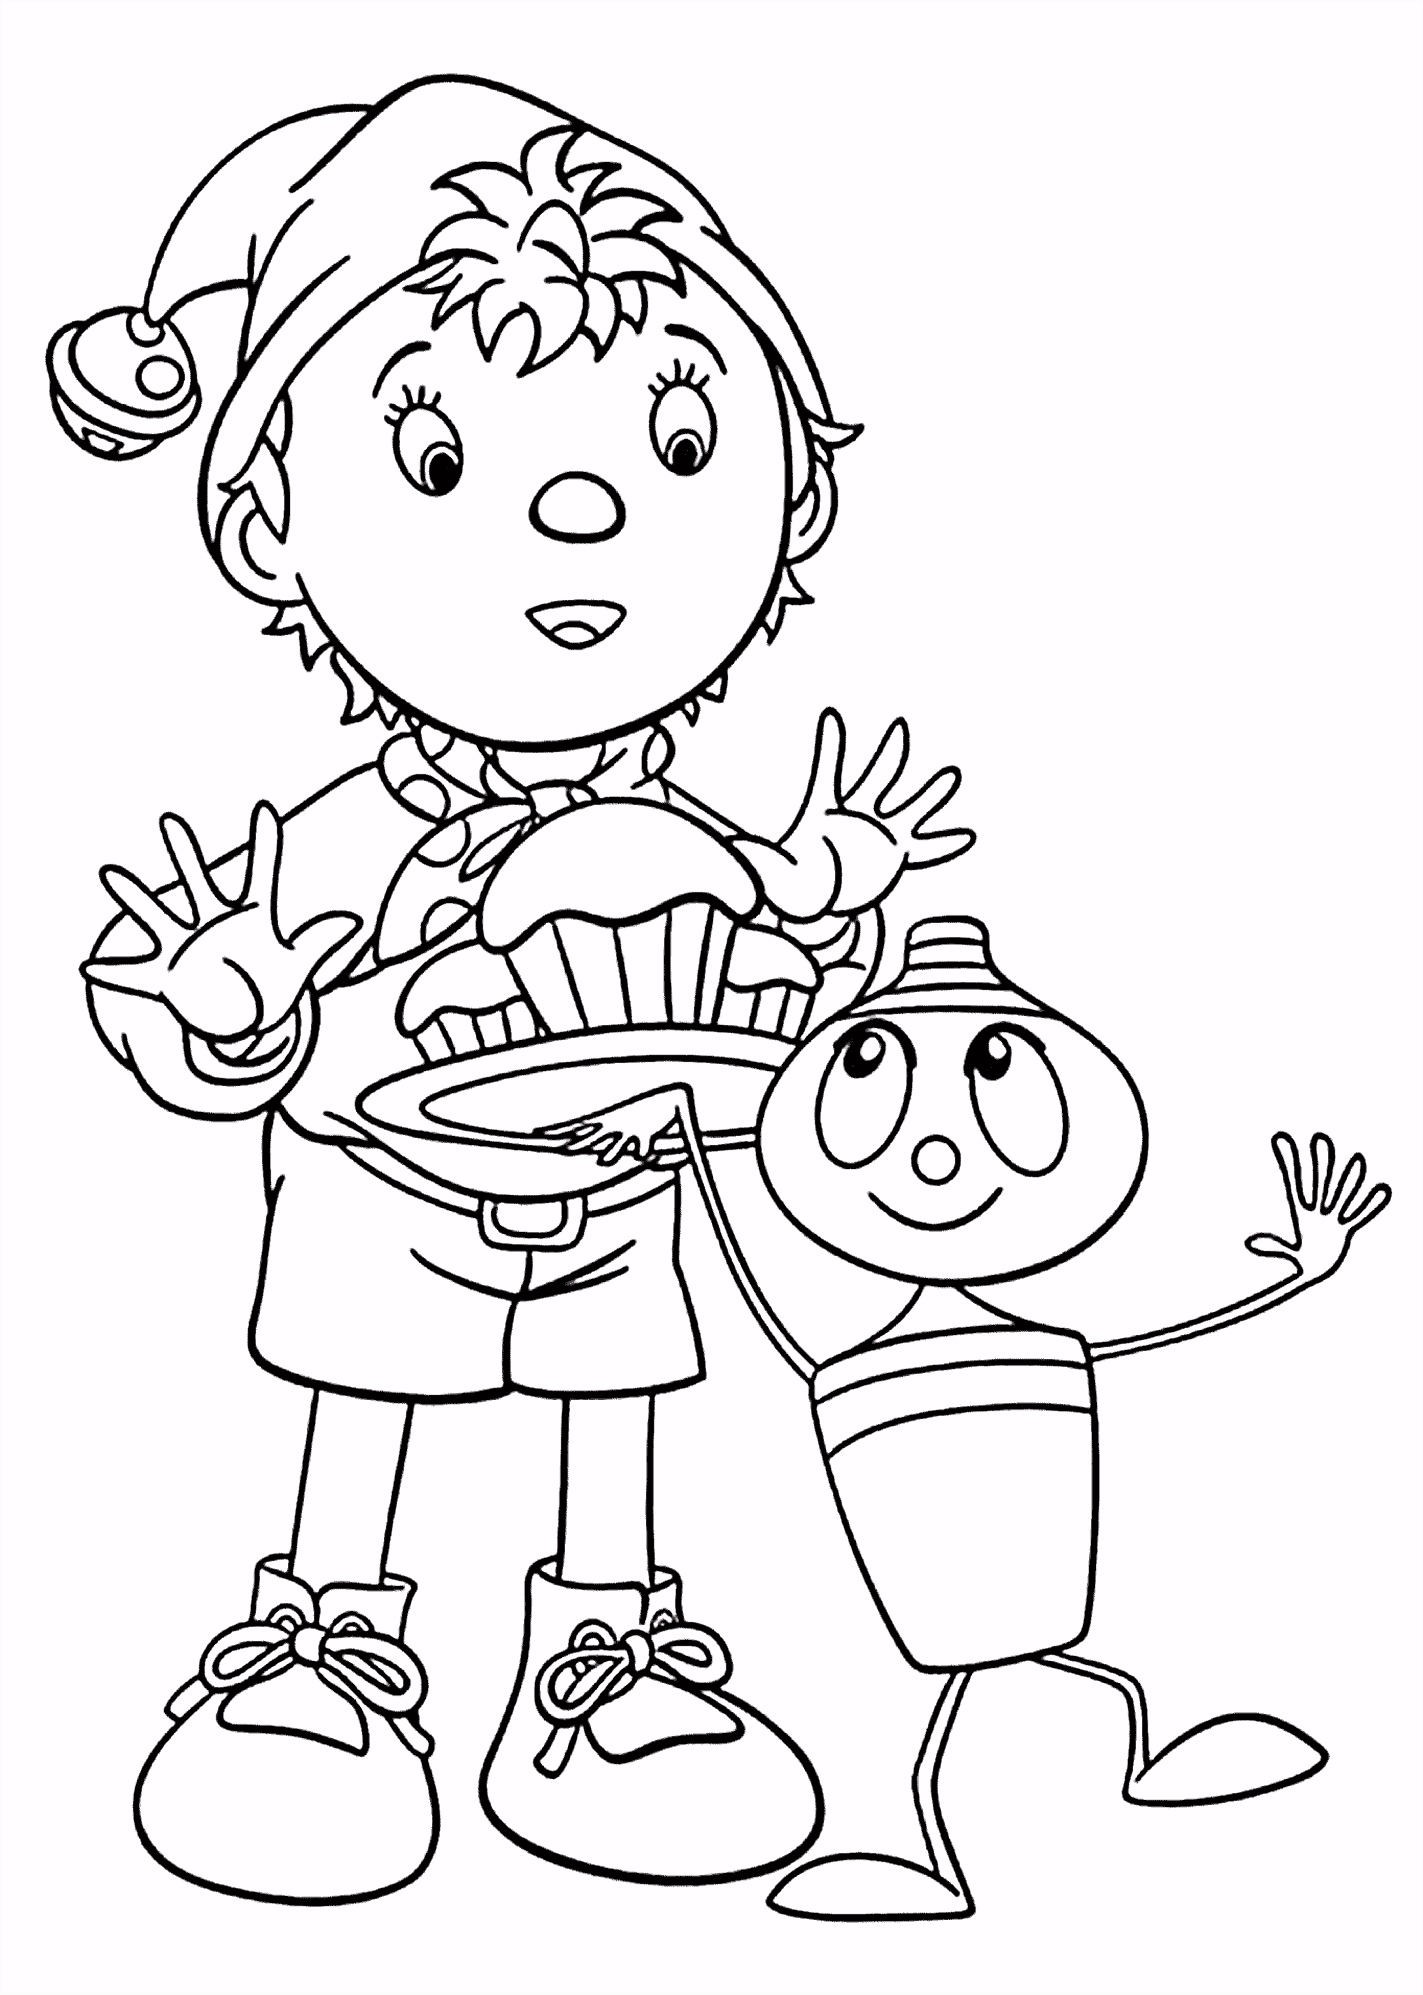 Top 10 Noddy Coloring Pages For Toddlers